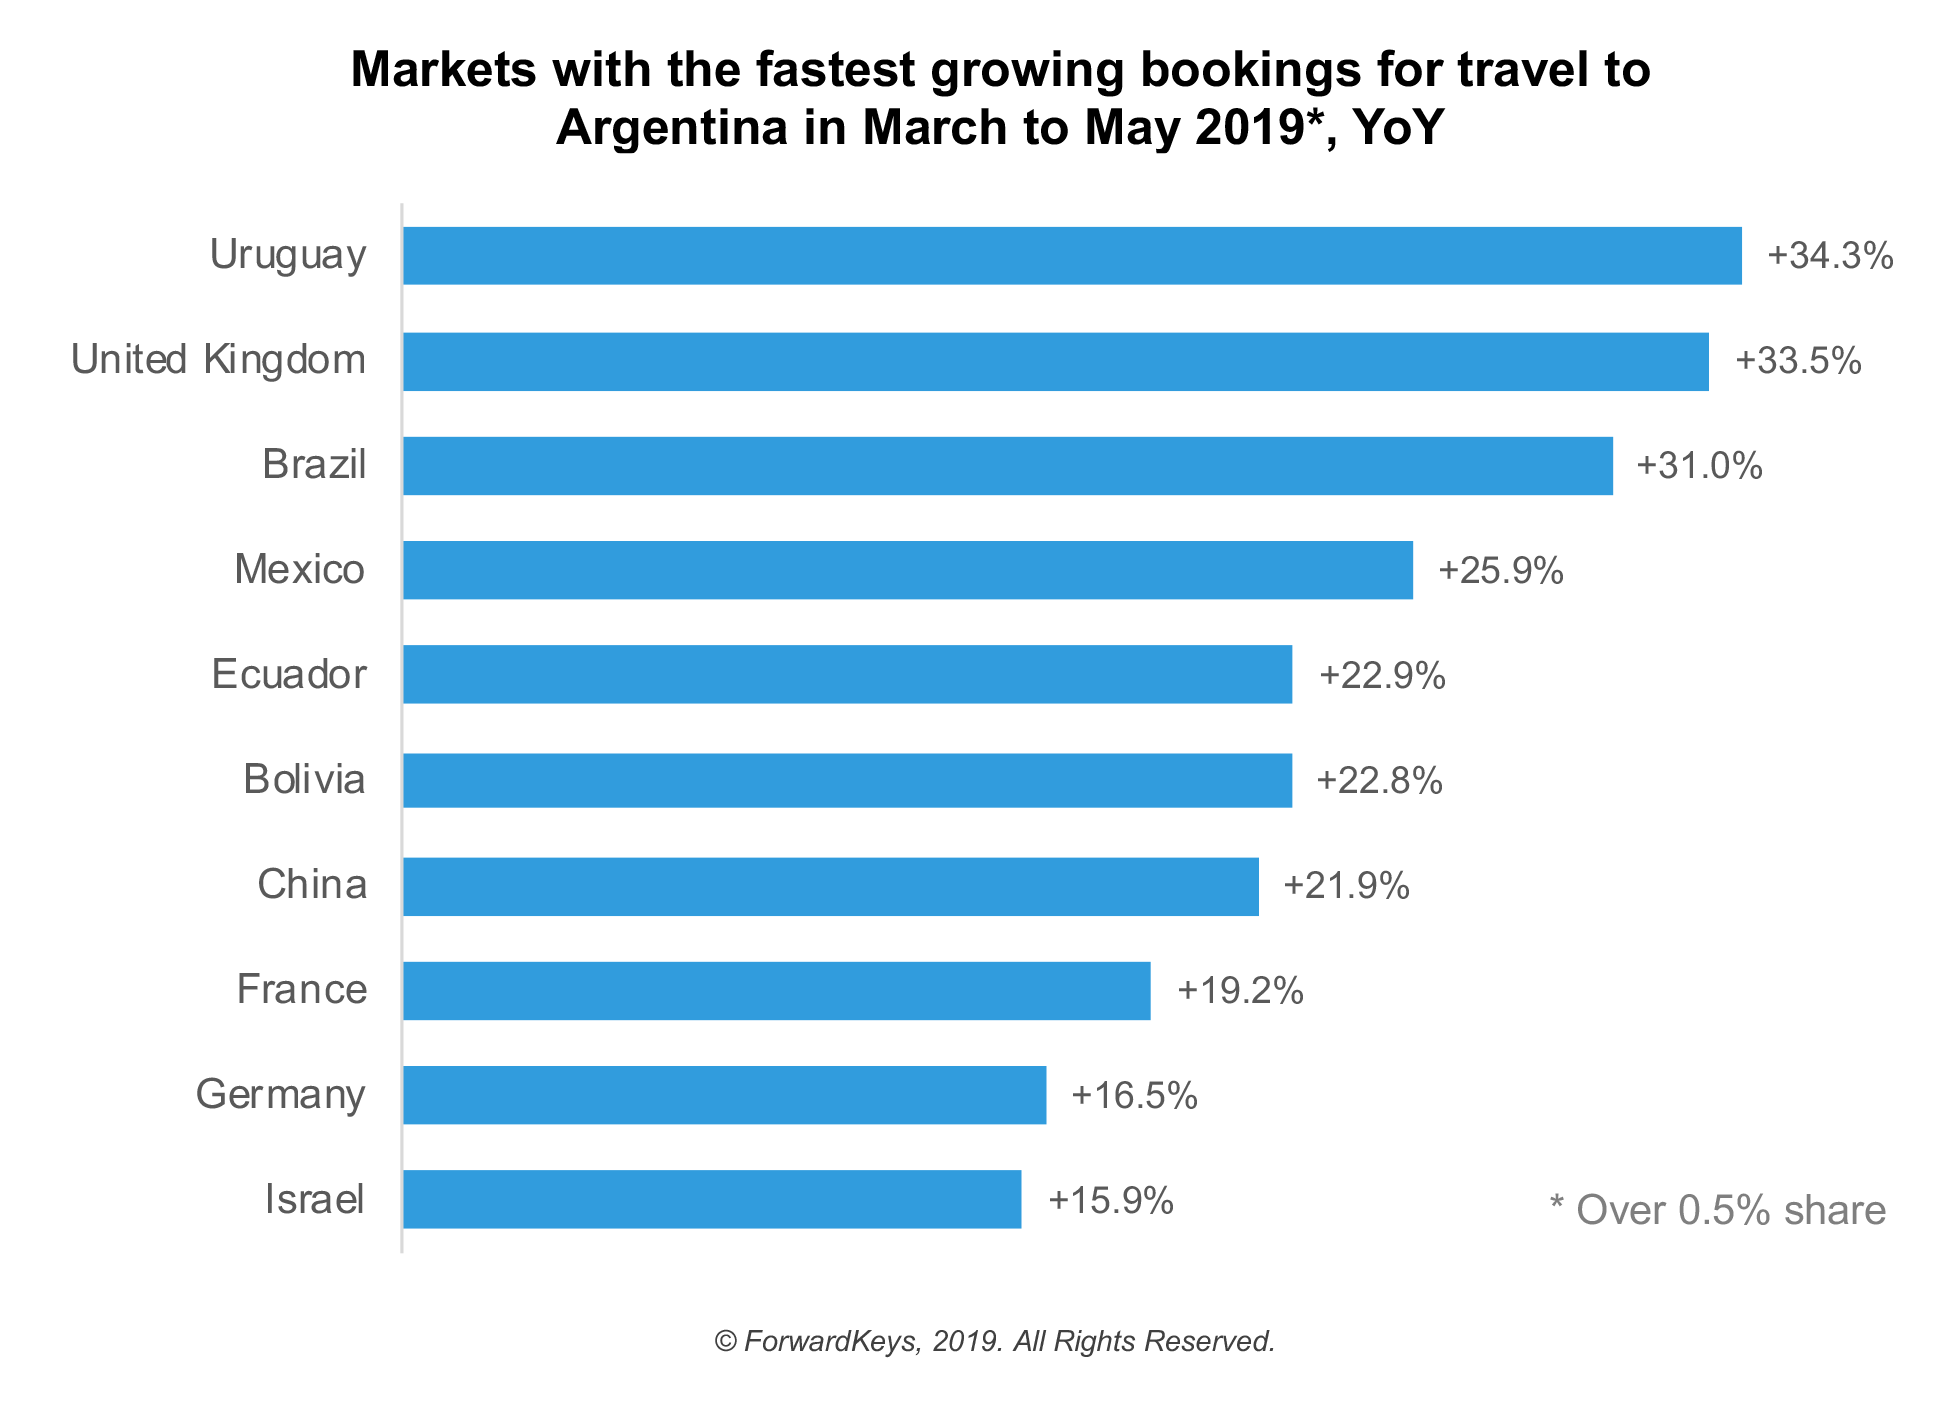 International travellers are flocking to Argentina, taking advantage of the poorly performing peso to boost the value of their holiday spending money, according to latest findings from ForwardKeys, which predicts future travel patterns by analysing 17 million flight booking transactions a day. Bookings for March to May are ahead 11.2% compared to last year. For South America as a whole, bookings are ahead 5.8%. In the preceding year to February, international arrivals in Argentina were up 3.9%, compared to 5.5% for the entire region.